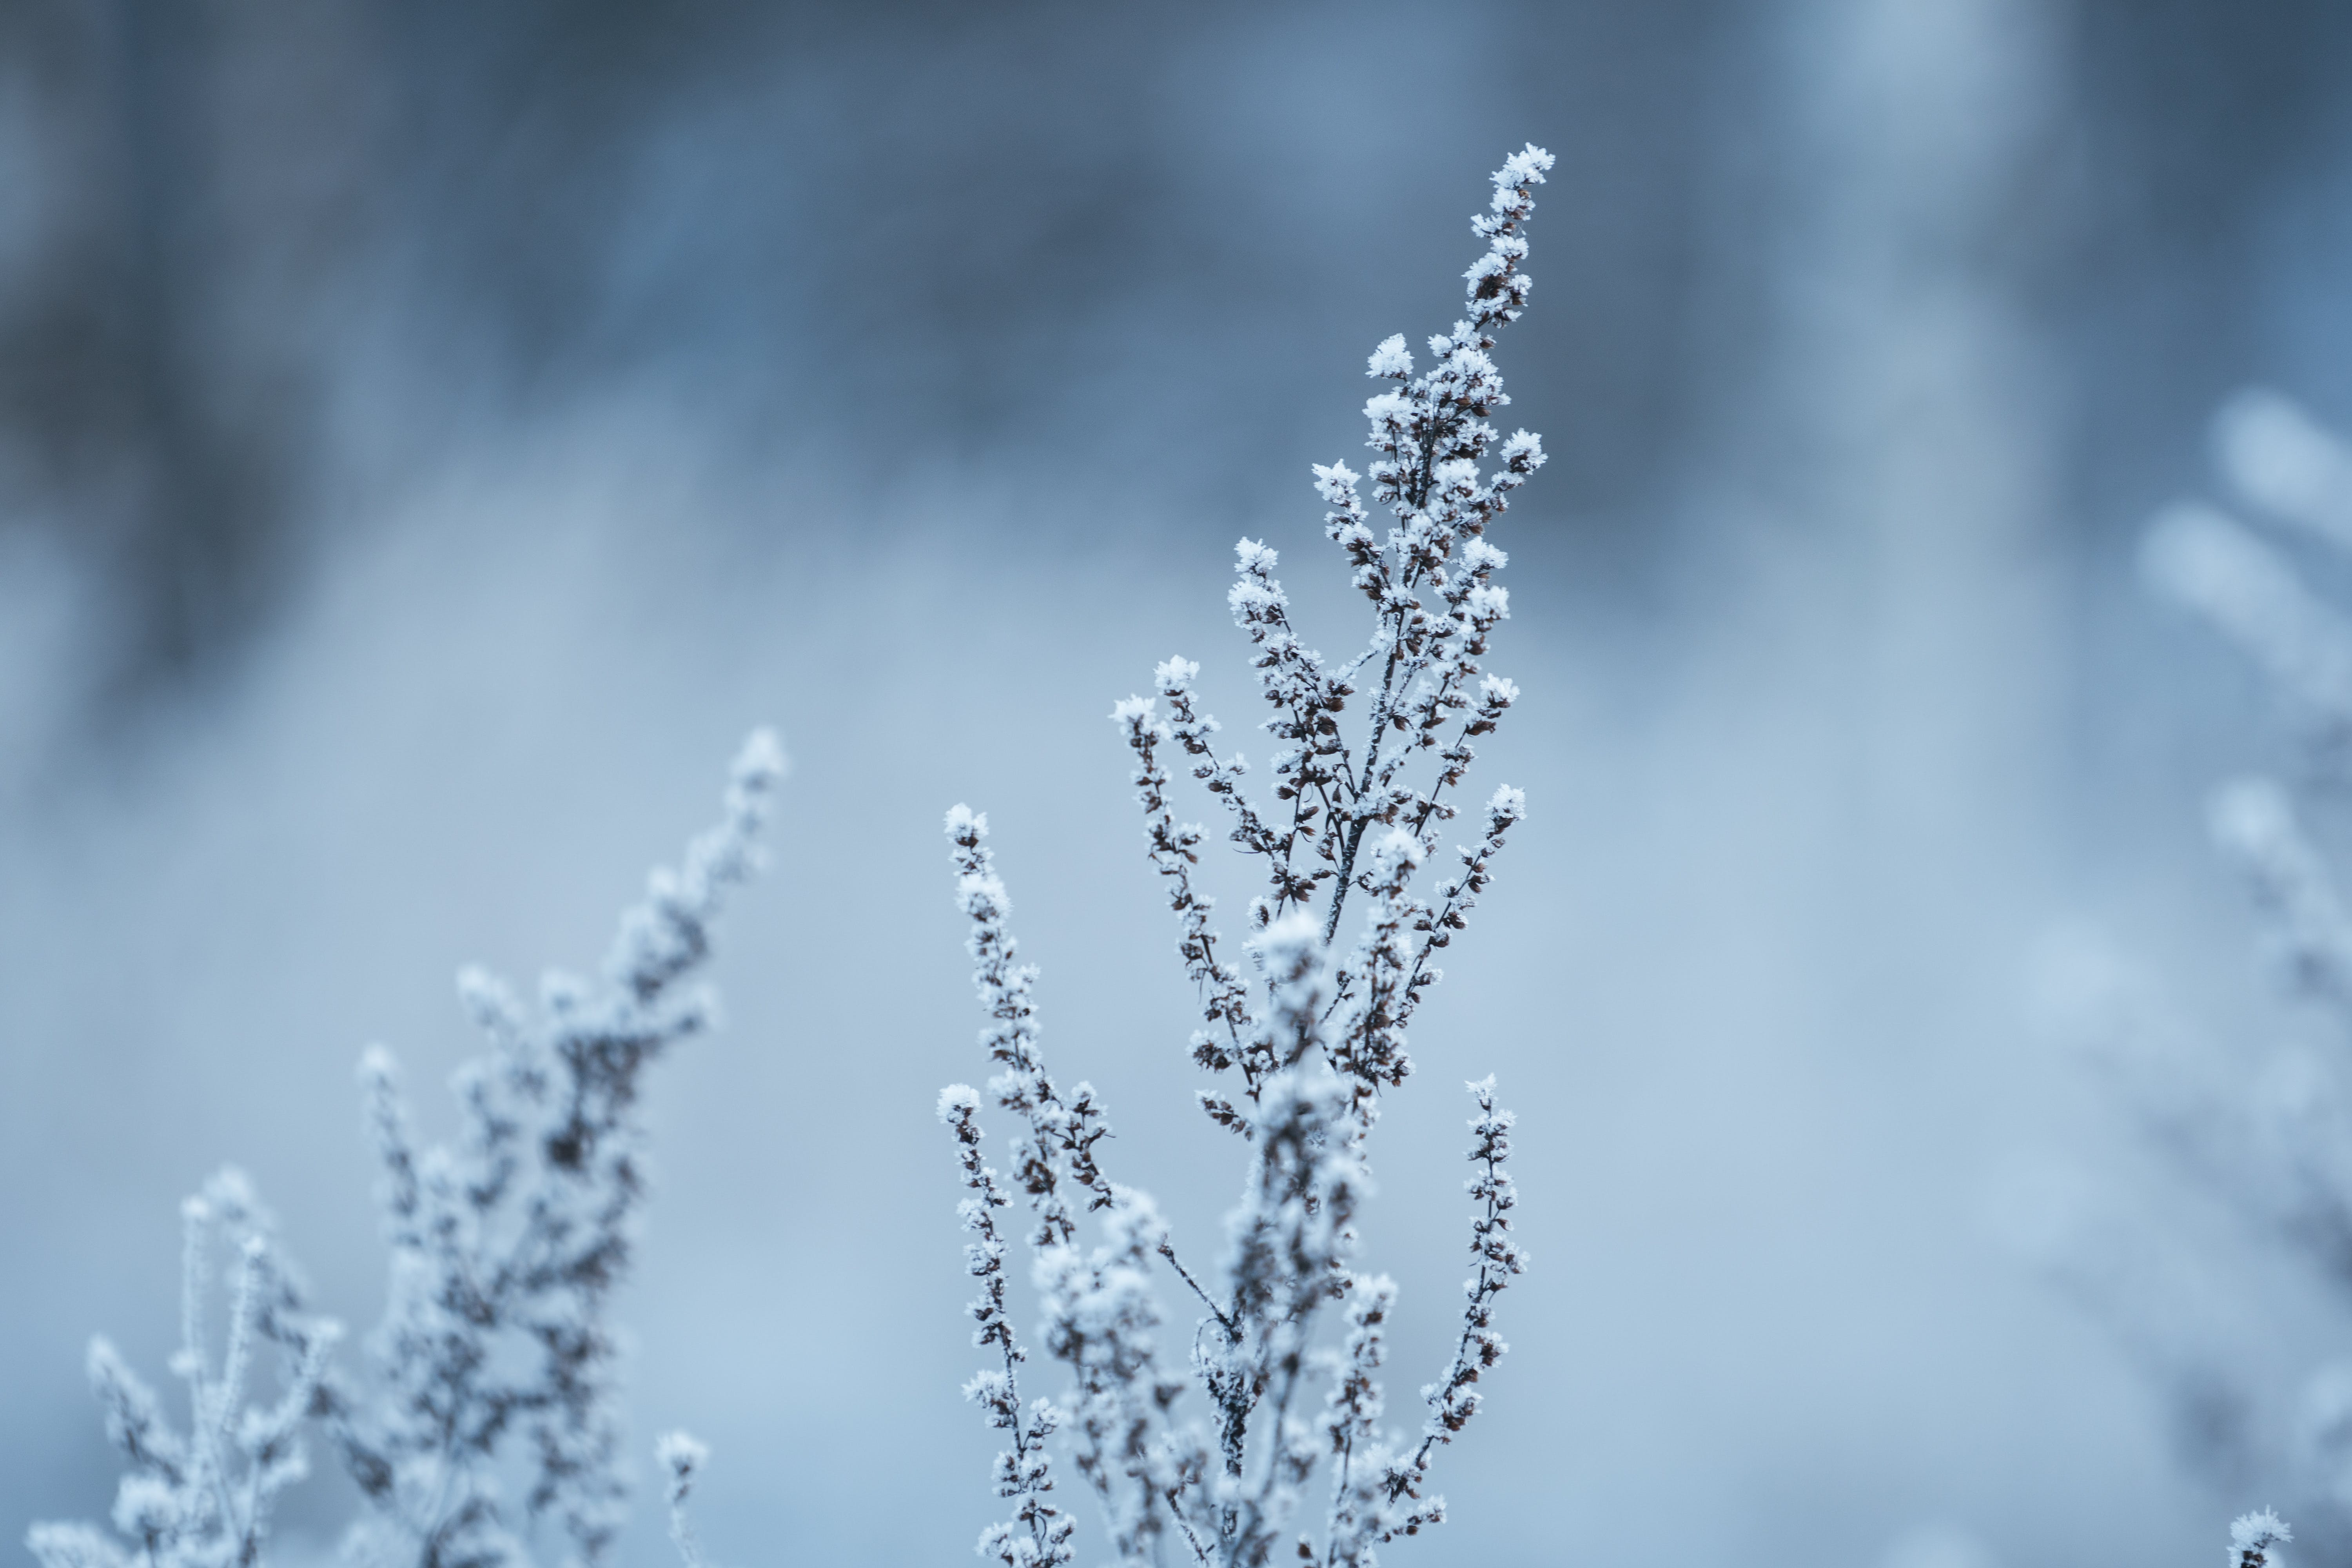 Green Leafed Plant Covered by Snow